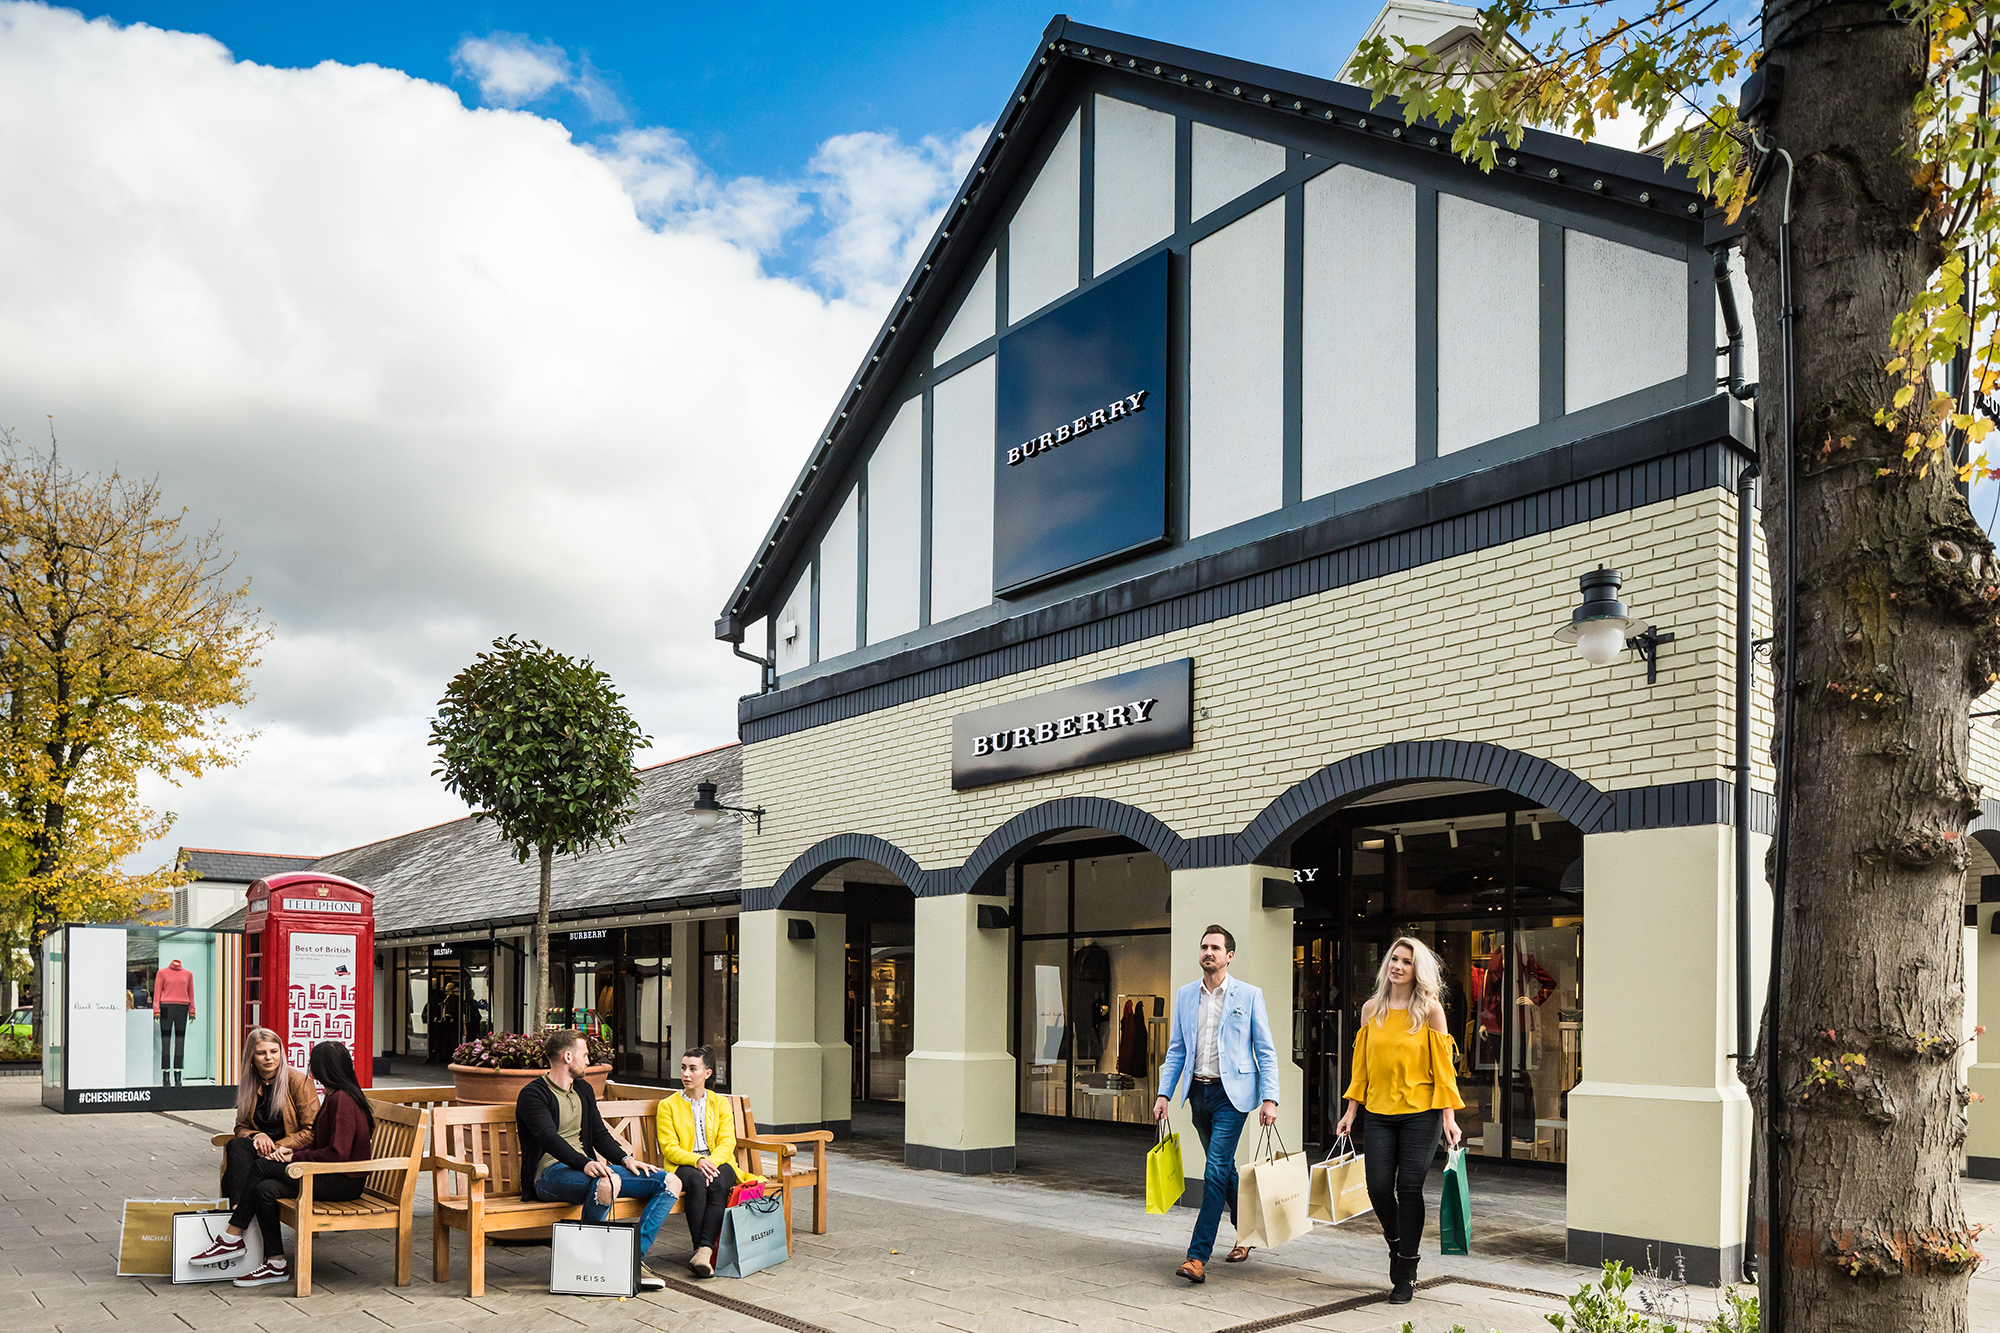 Cheshire Oaks Designer Outlet - Visit Cheshire